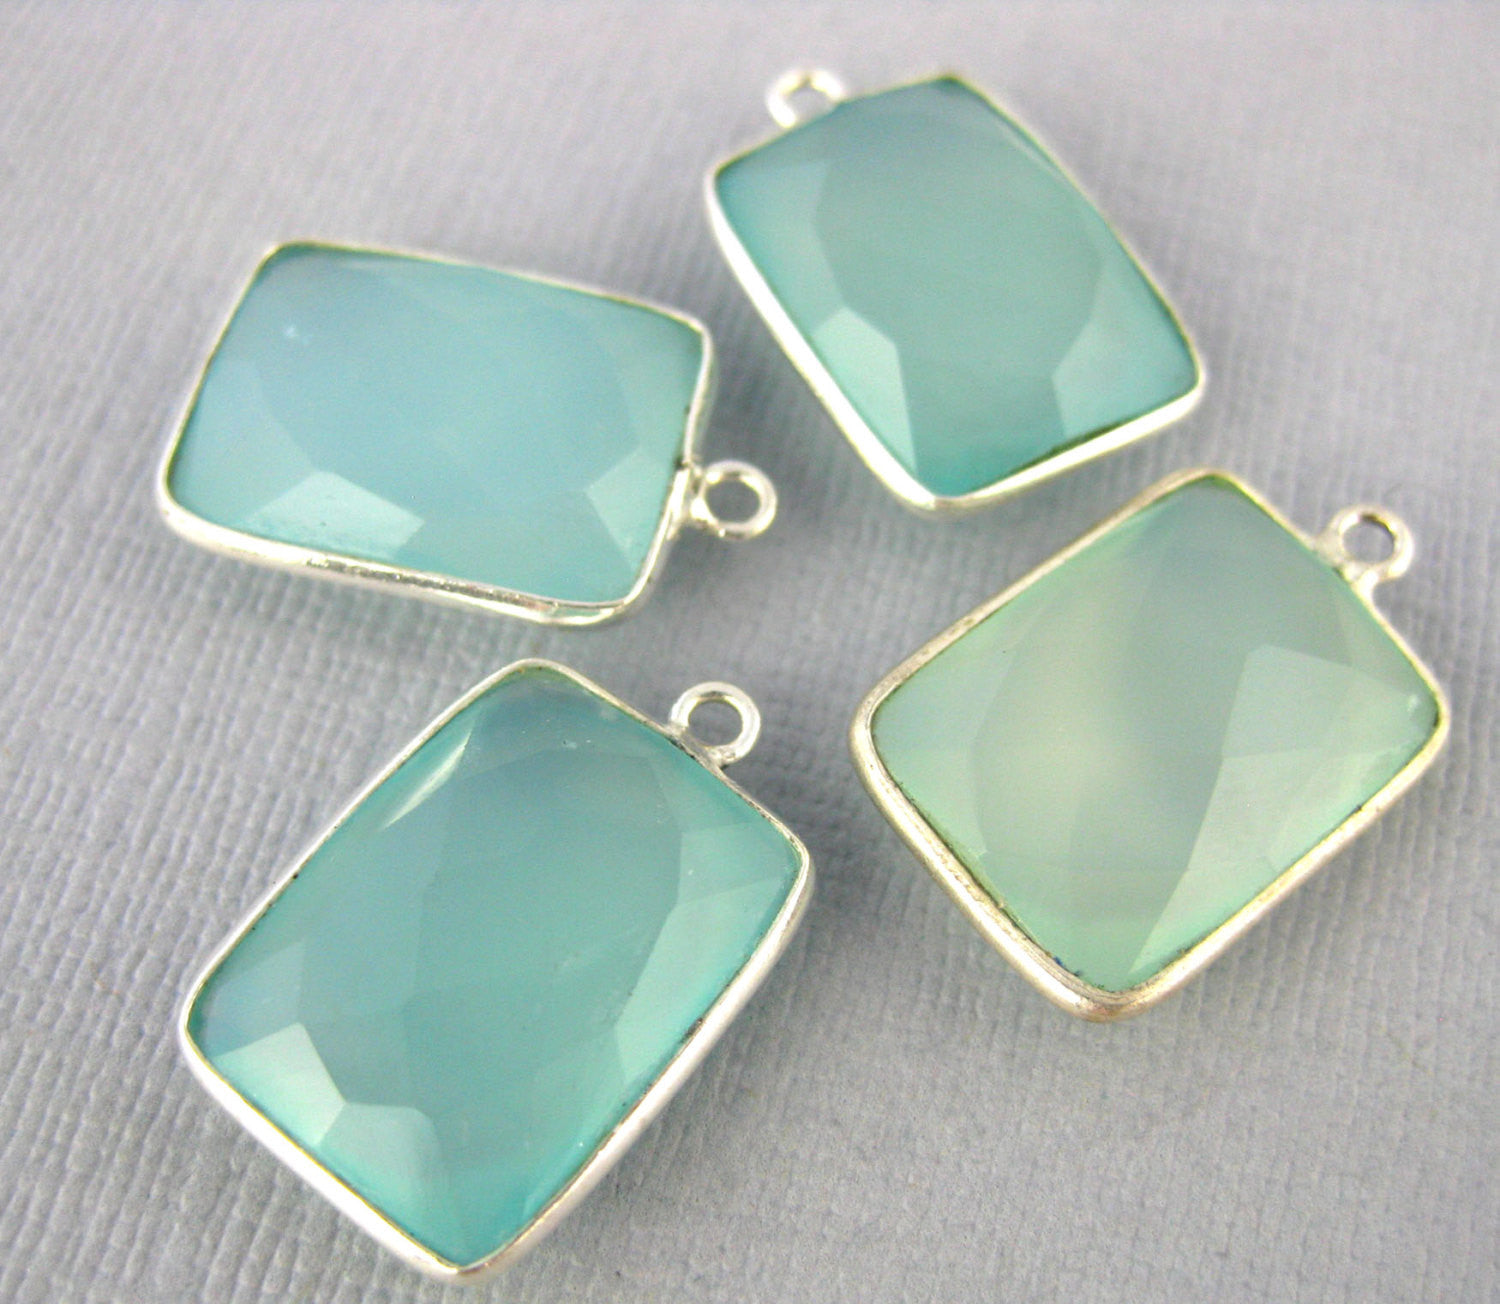 Aqua Blue Chalcedony Station Rectangle Pendant- 12mm x 16mm Sterling Silver Bezel Single Bail Charm Pendant